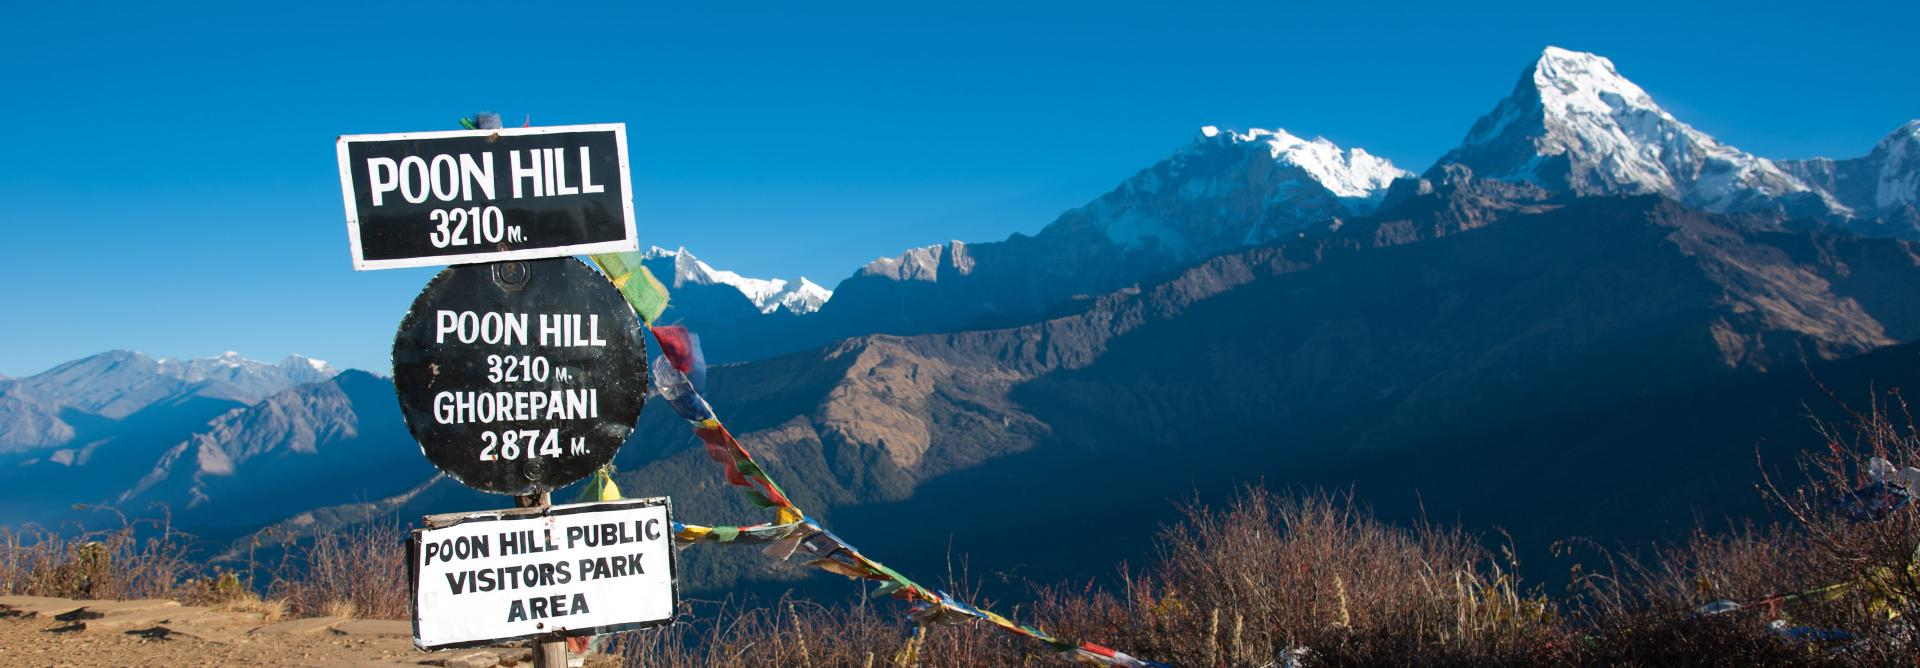 Poon Hill Himalayan Charity Trek